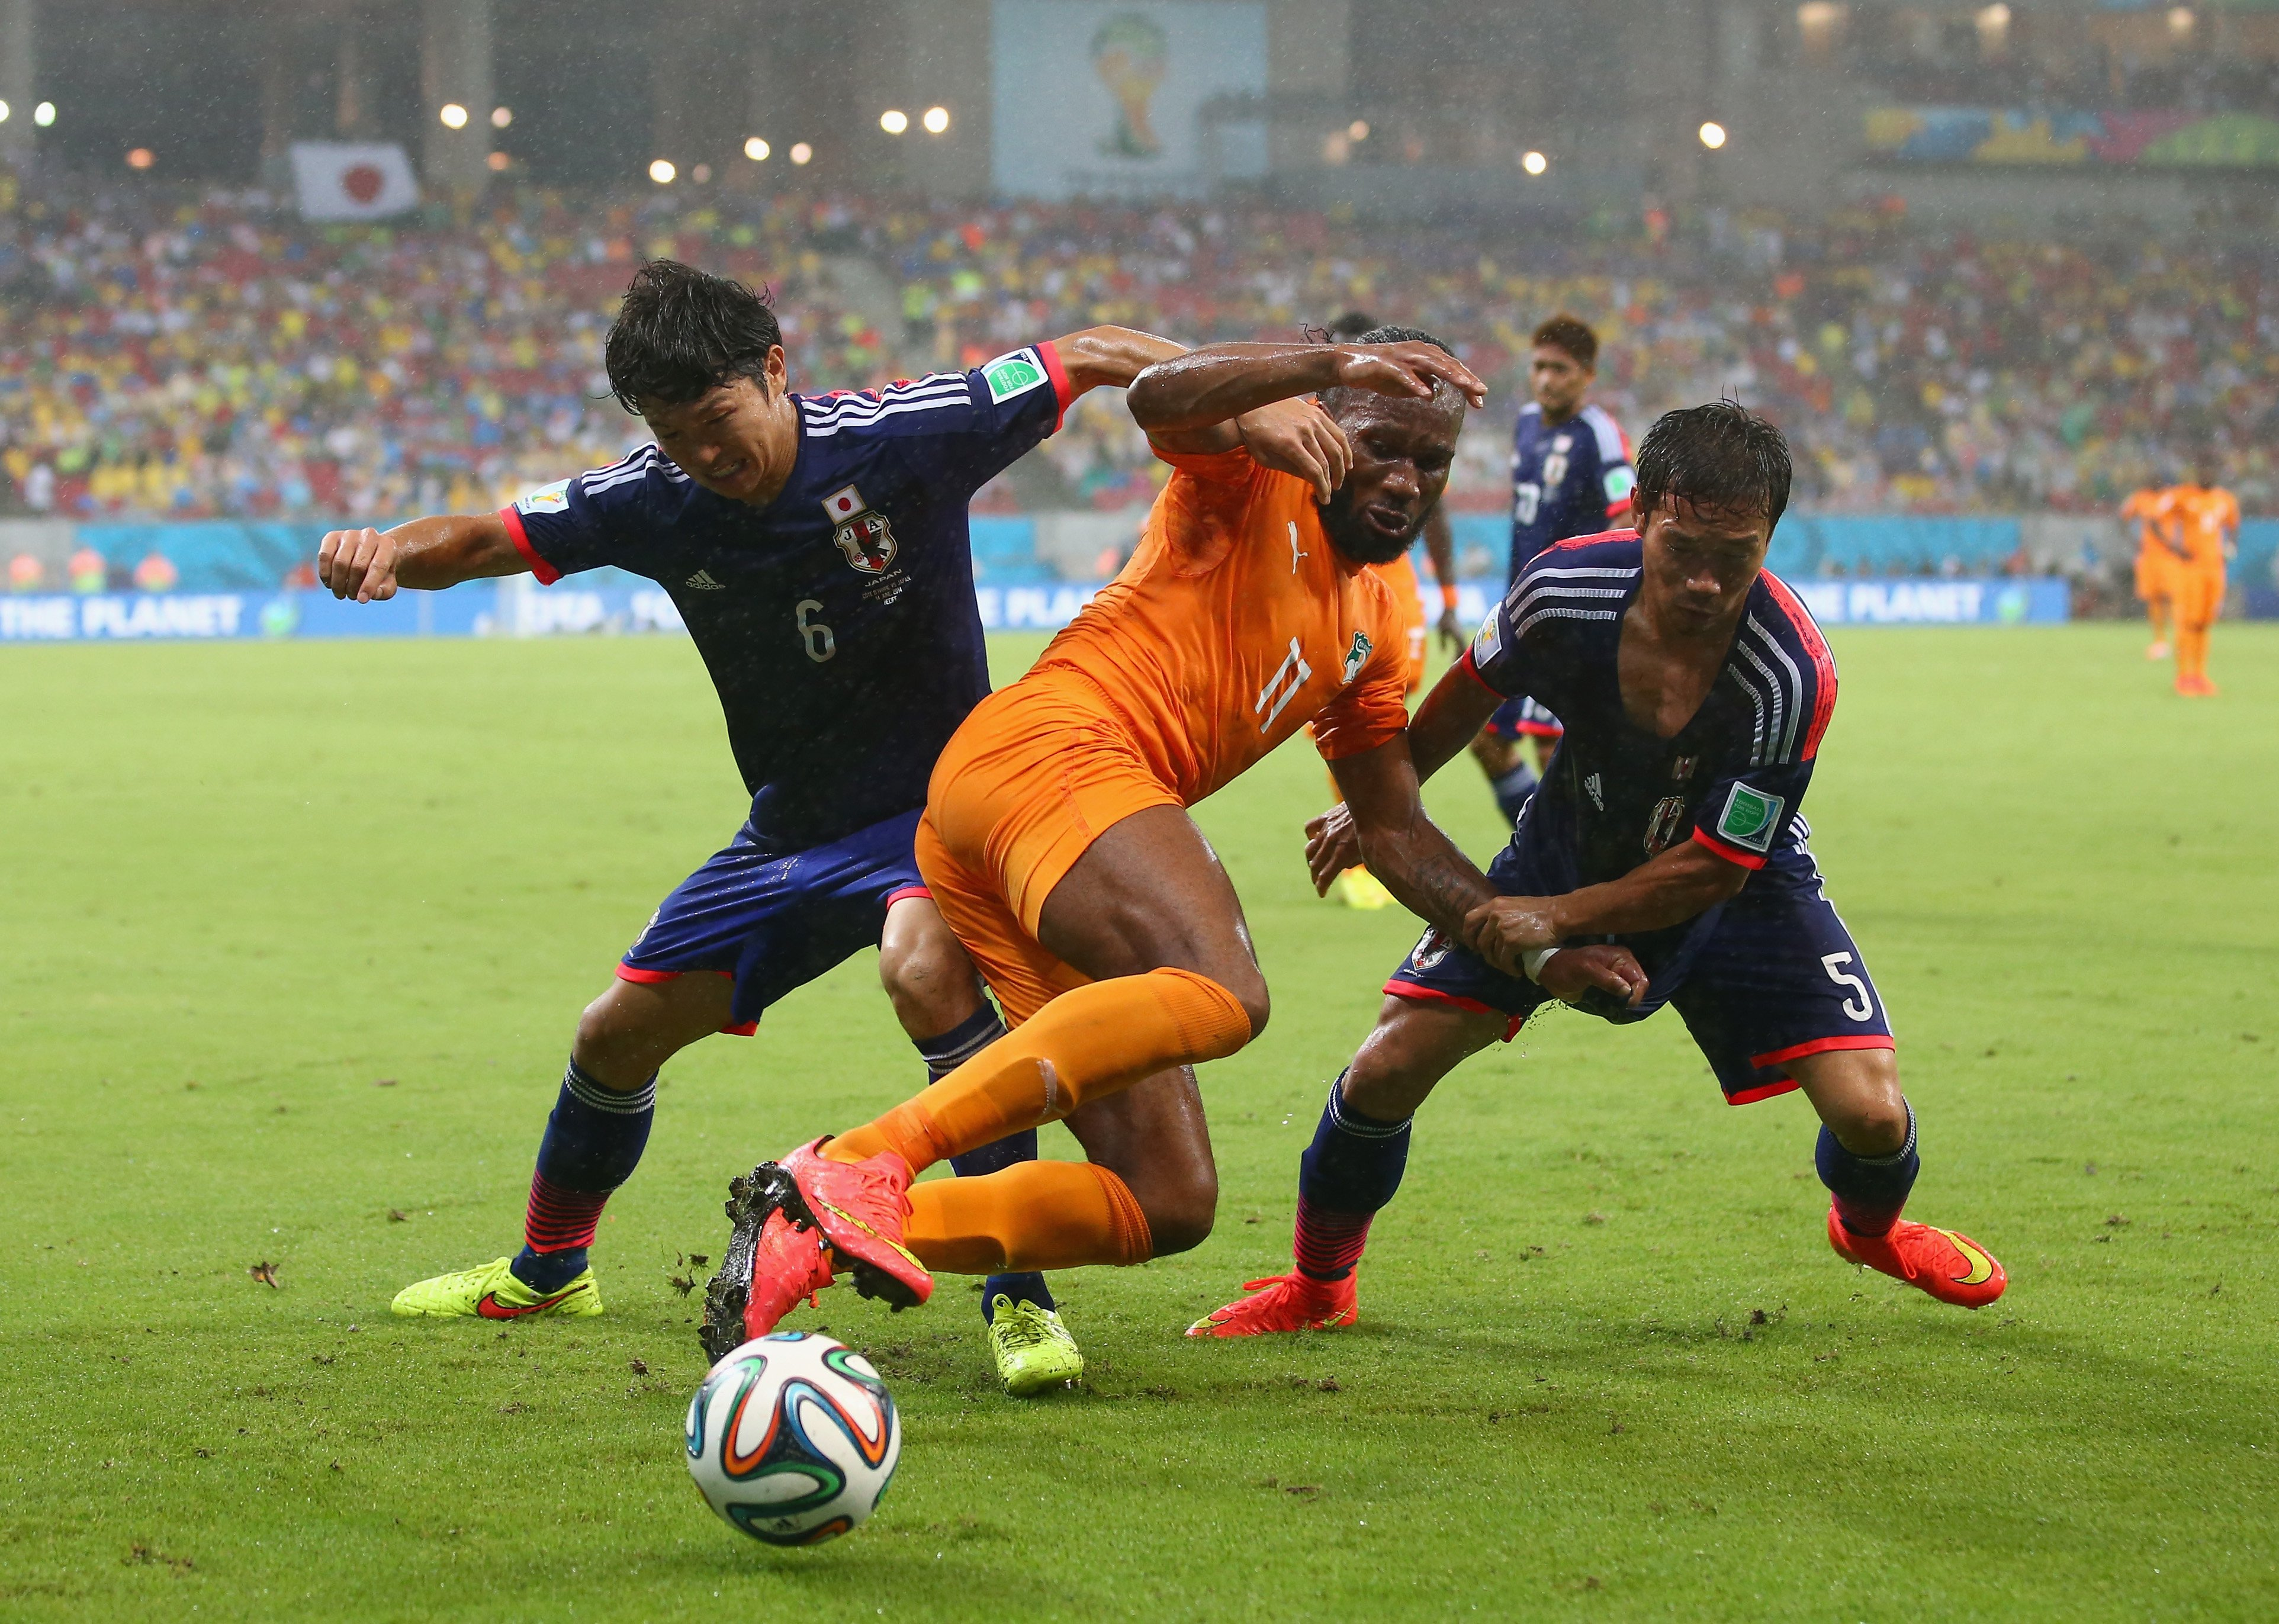 Masato Morishige and Yuto Nagatomo of Japan challenge Didier Drogba of the Ivory Coast during the 2014 FIFA World Cup Brazil Group C match  between the Ivory Coast and Japan at Arena Pernambuco on June 14, 2014 in Recife, Brazil.